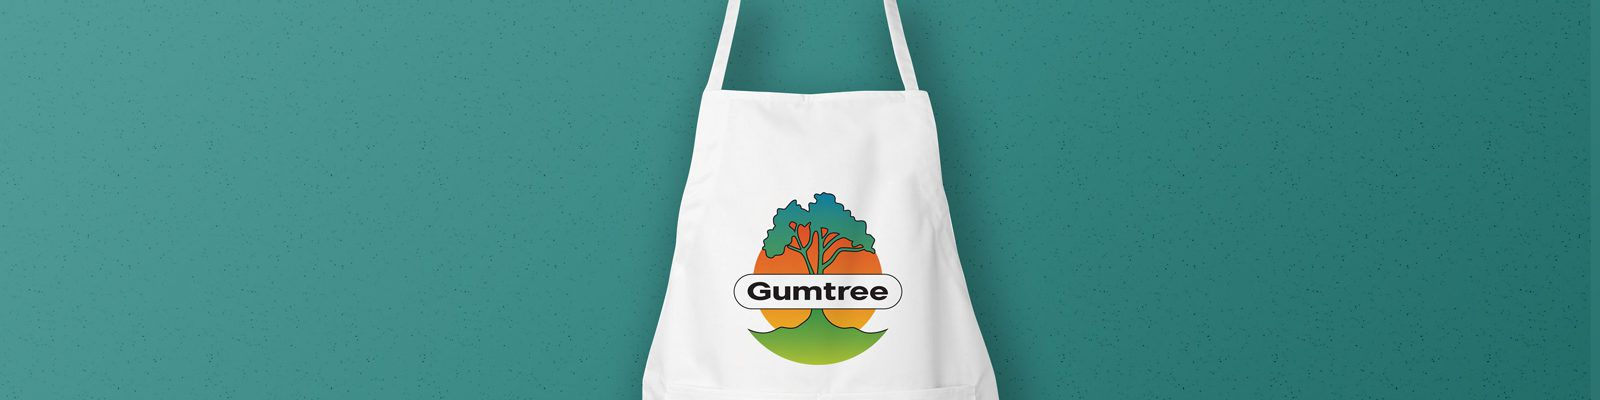 See How Printed Merchandise Helped Gumtree's Upcycle Revolution - Header Image